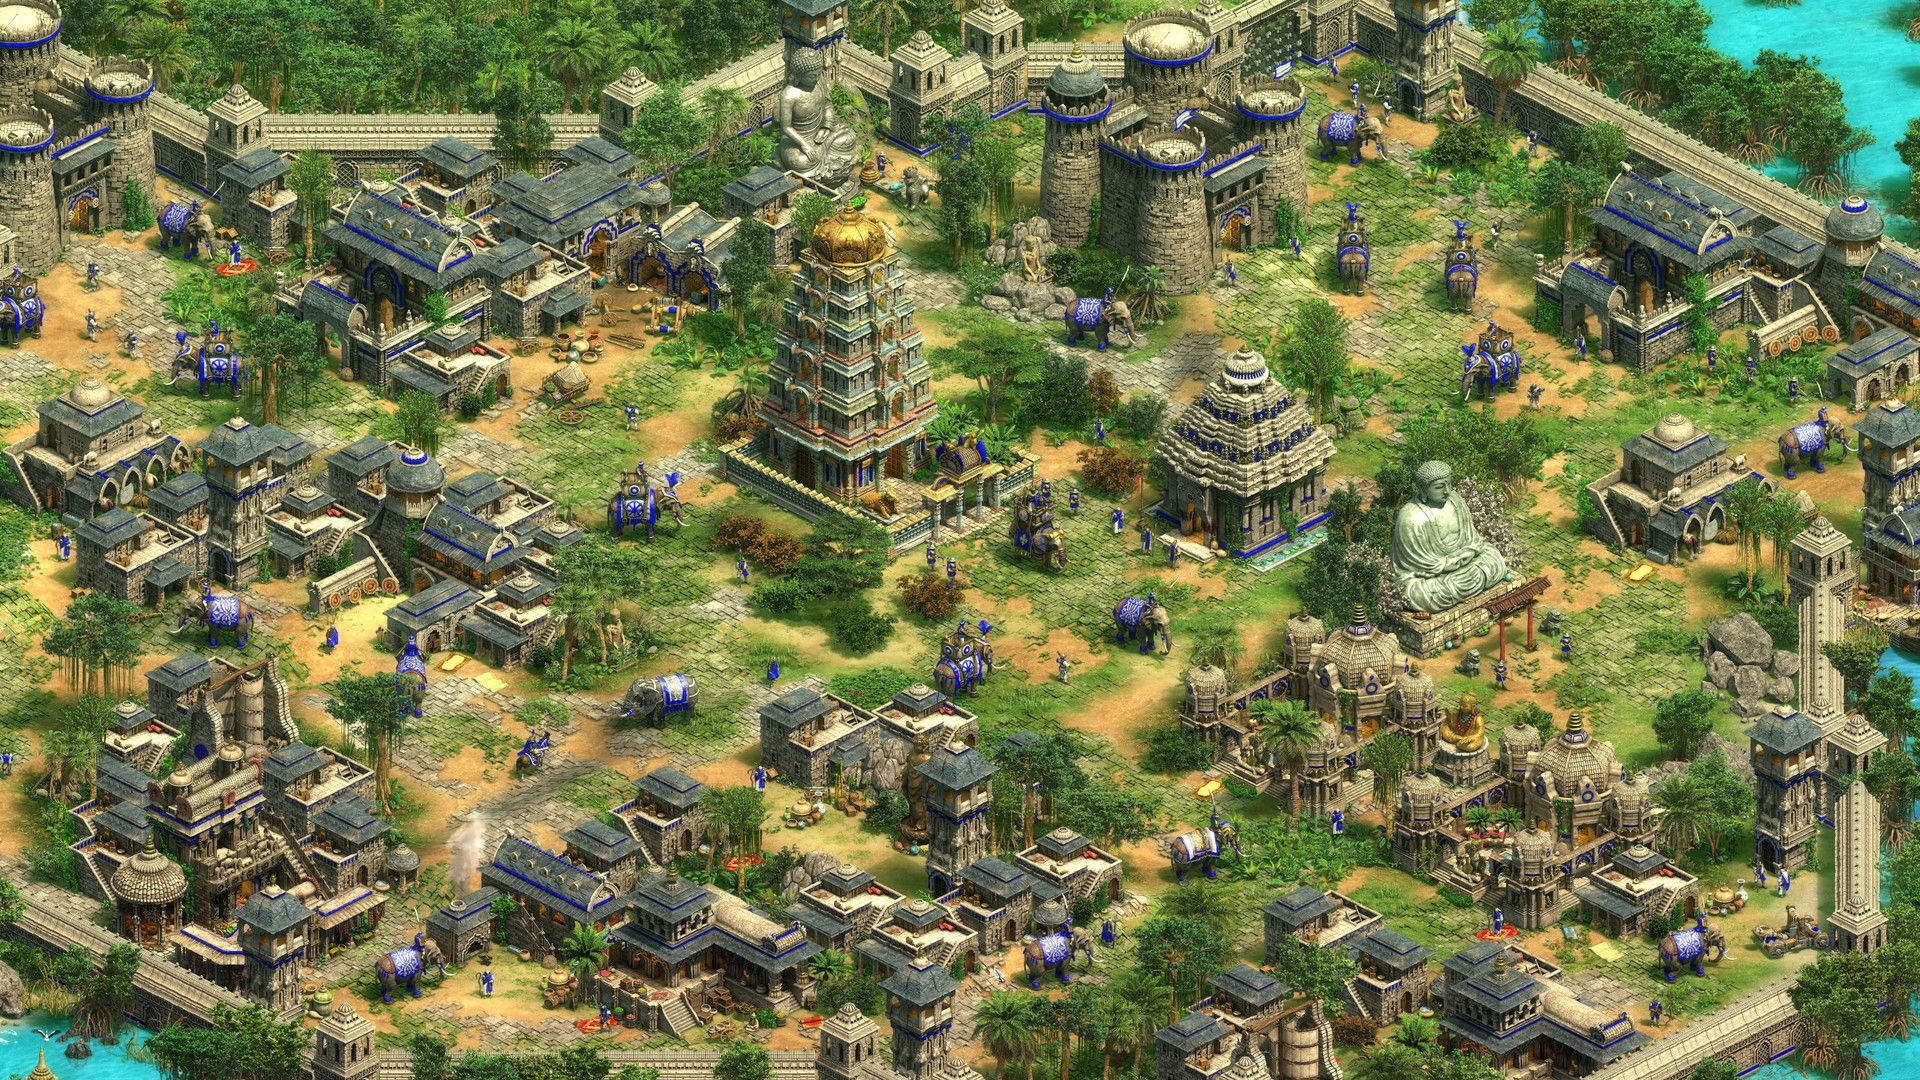 Age of Empires 2 DE is getting co-op and a new expansion this year